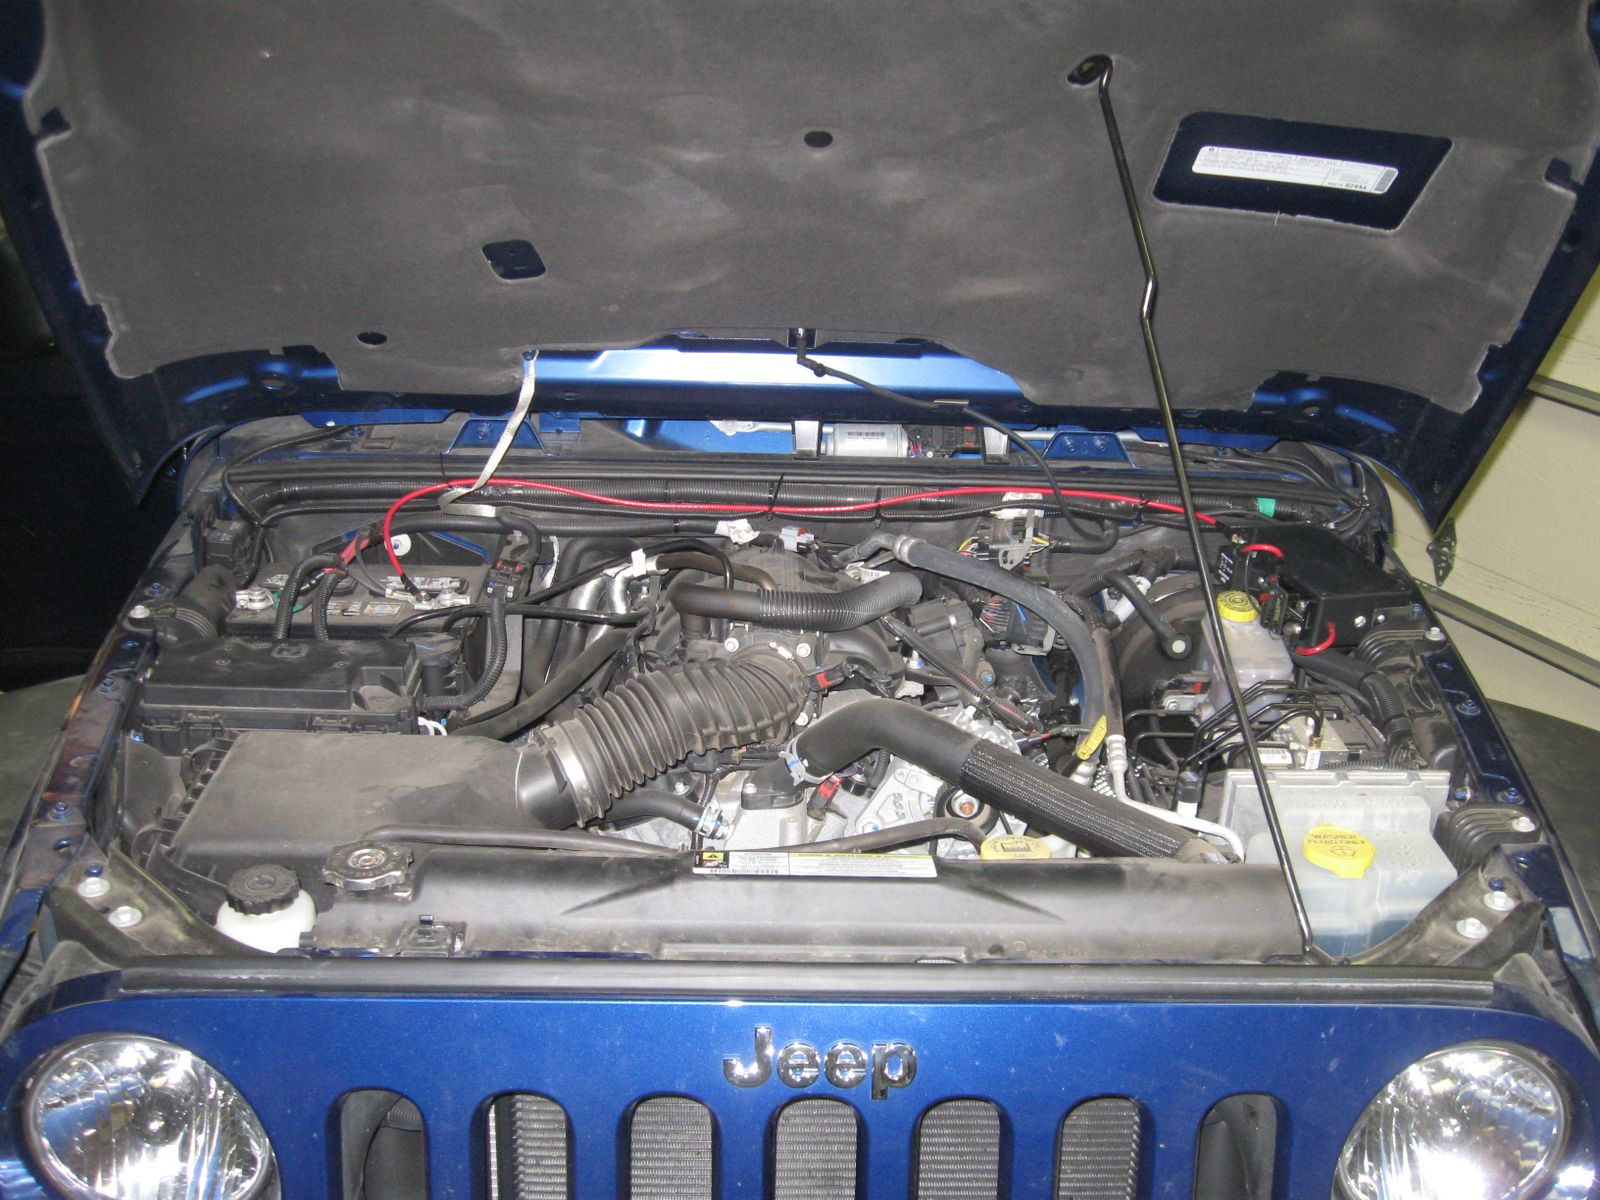 Project Blue Bruin Auxiliary Fuse Block Painless Wiring 7 Circuit I Reset The Breaker Put Key In Iginition And Used A Voltage Meter To Test Works Great Heres Look At Engine